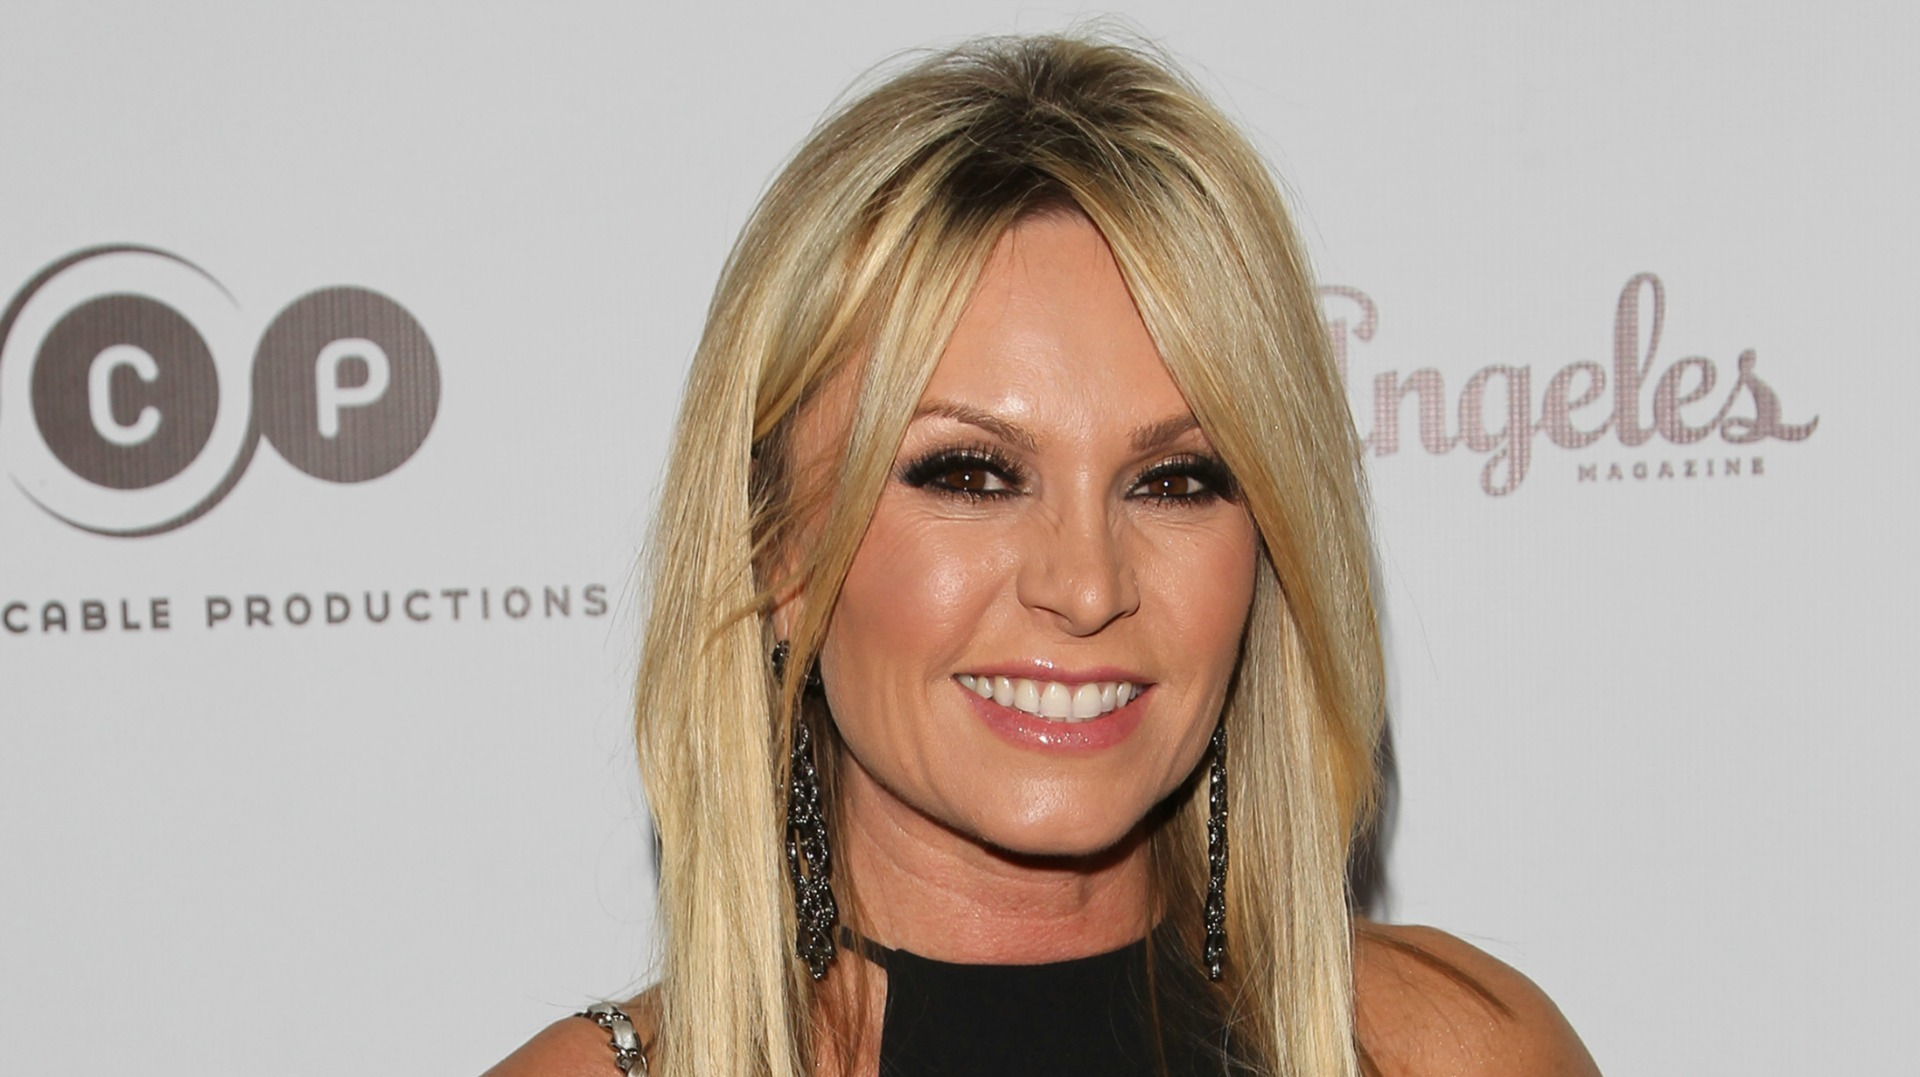 Bravo's first scripted series 'Girlfriends' Guide to Divorce' premiere - Arrivals  Featuring: Tamra Judge Where: Los Angeles, California, United States When: 18 Nov 2014 Credit: FayesVision/WENN.com